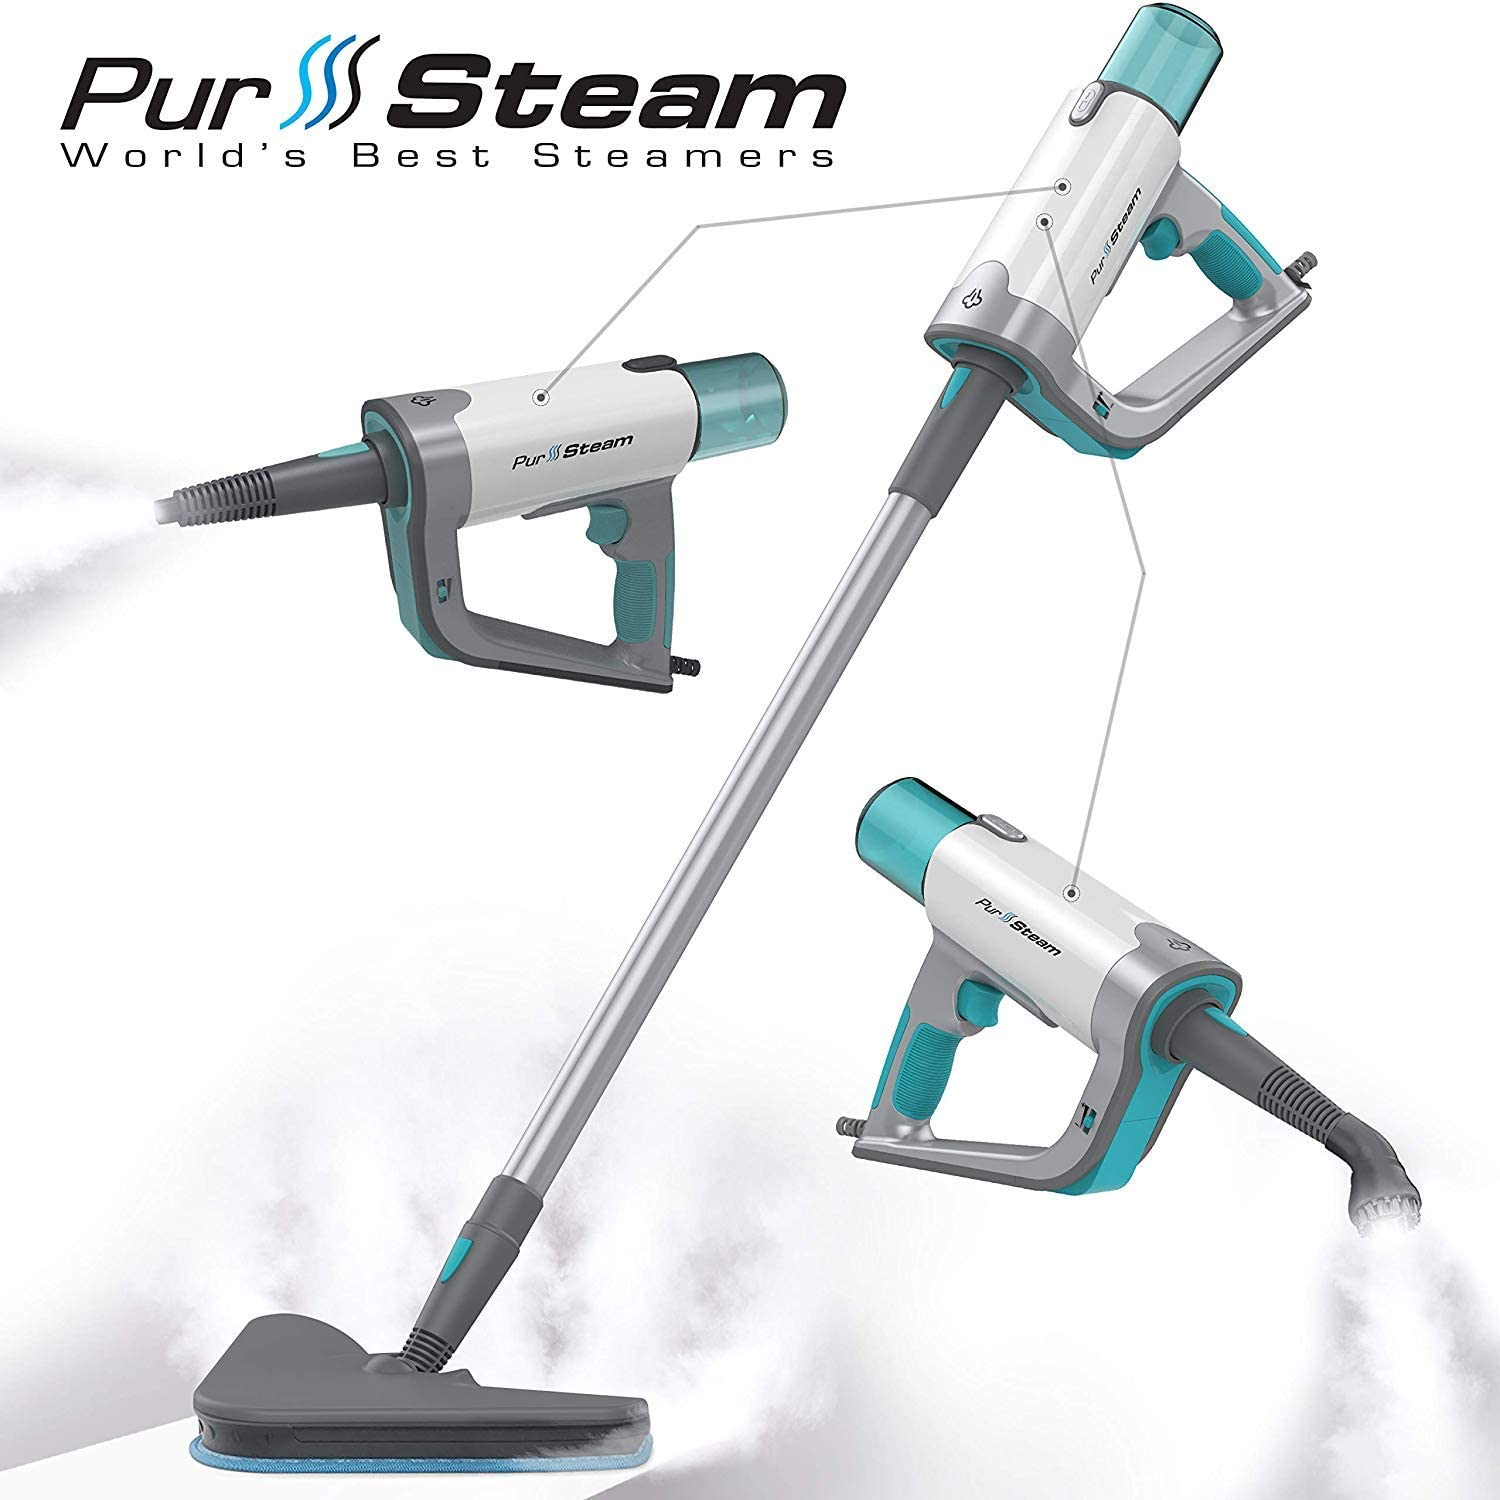 PurSteam 12 in 1 Steam Mop